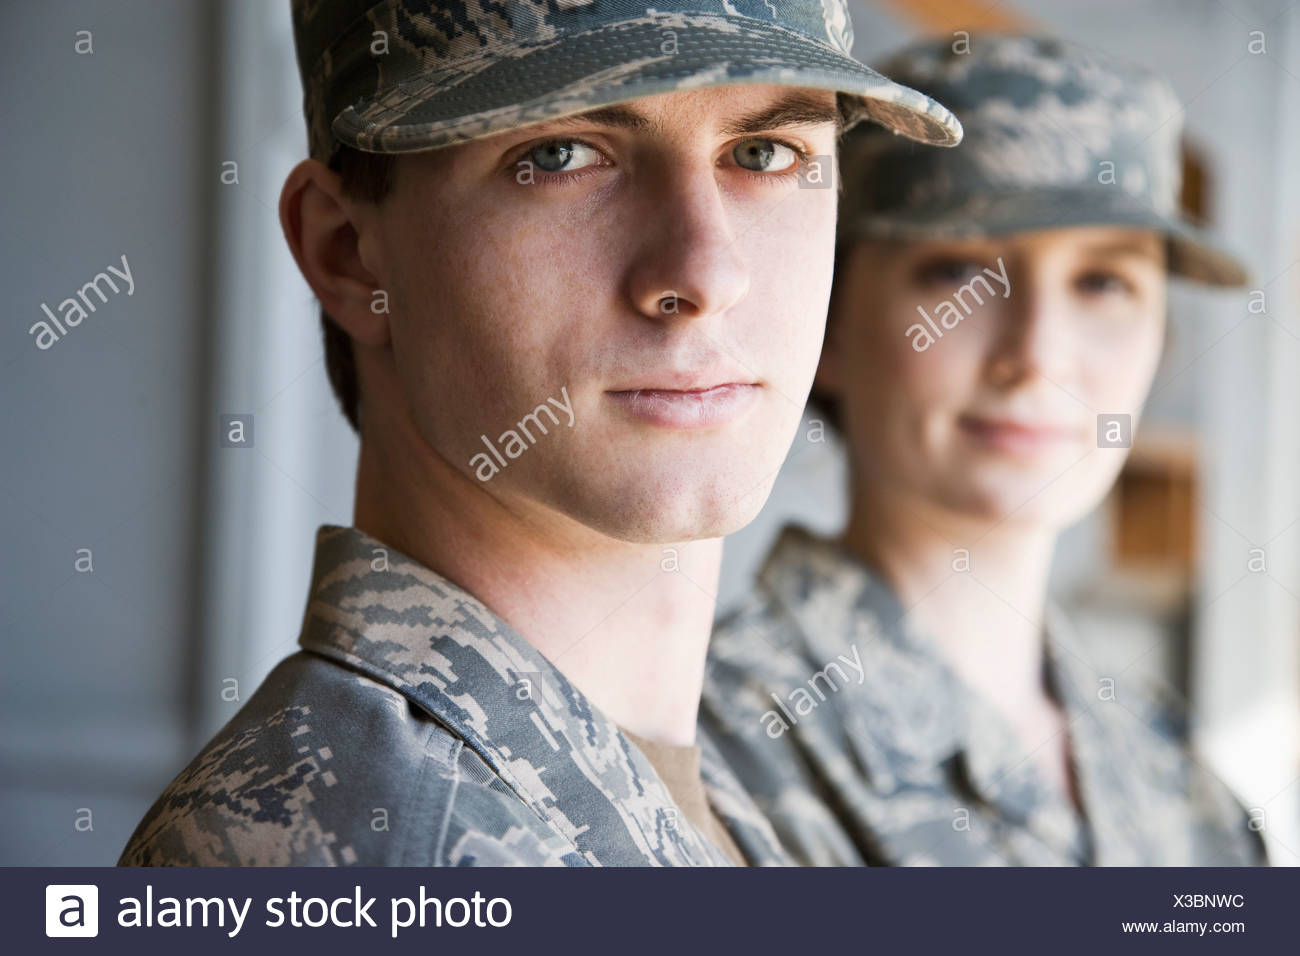 American soldier in army combat uniform - Stock Image